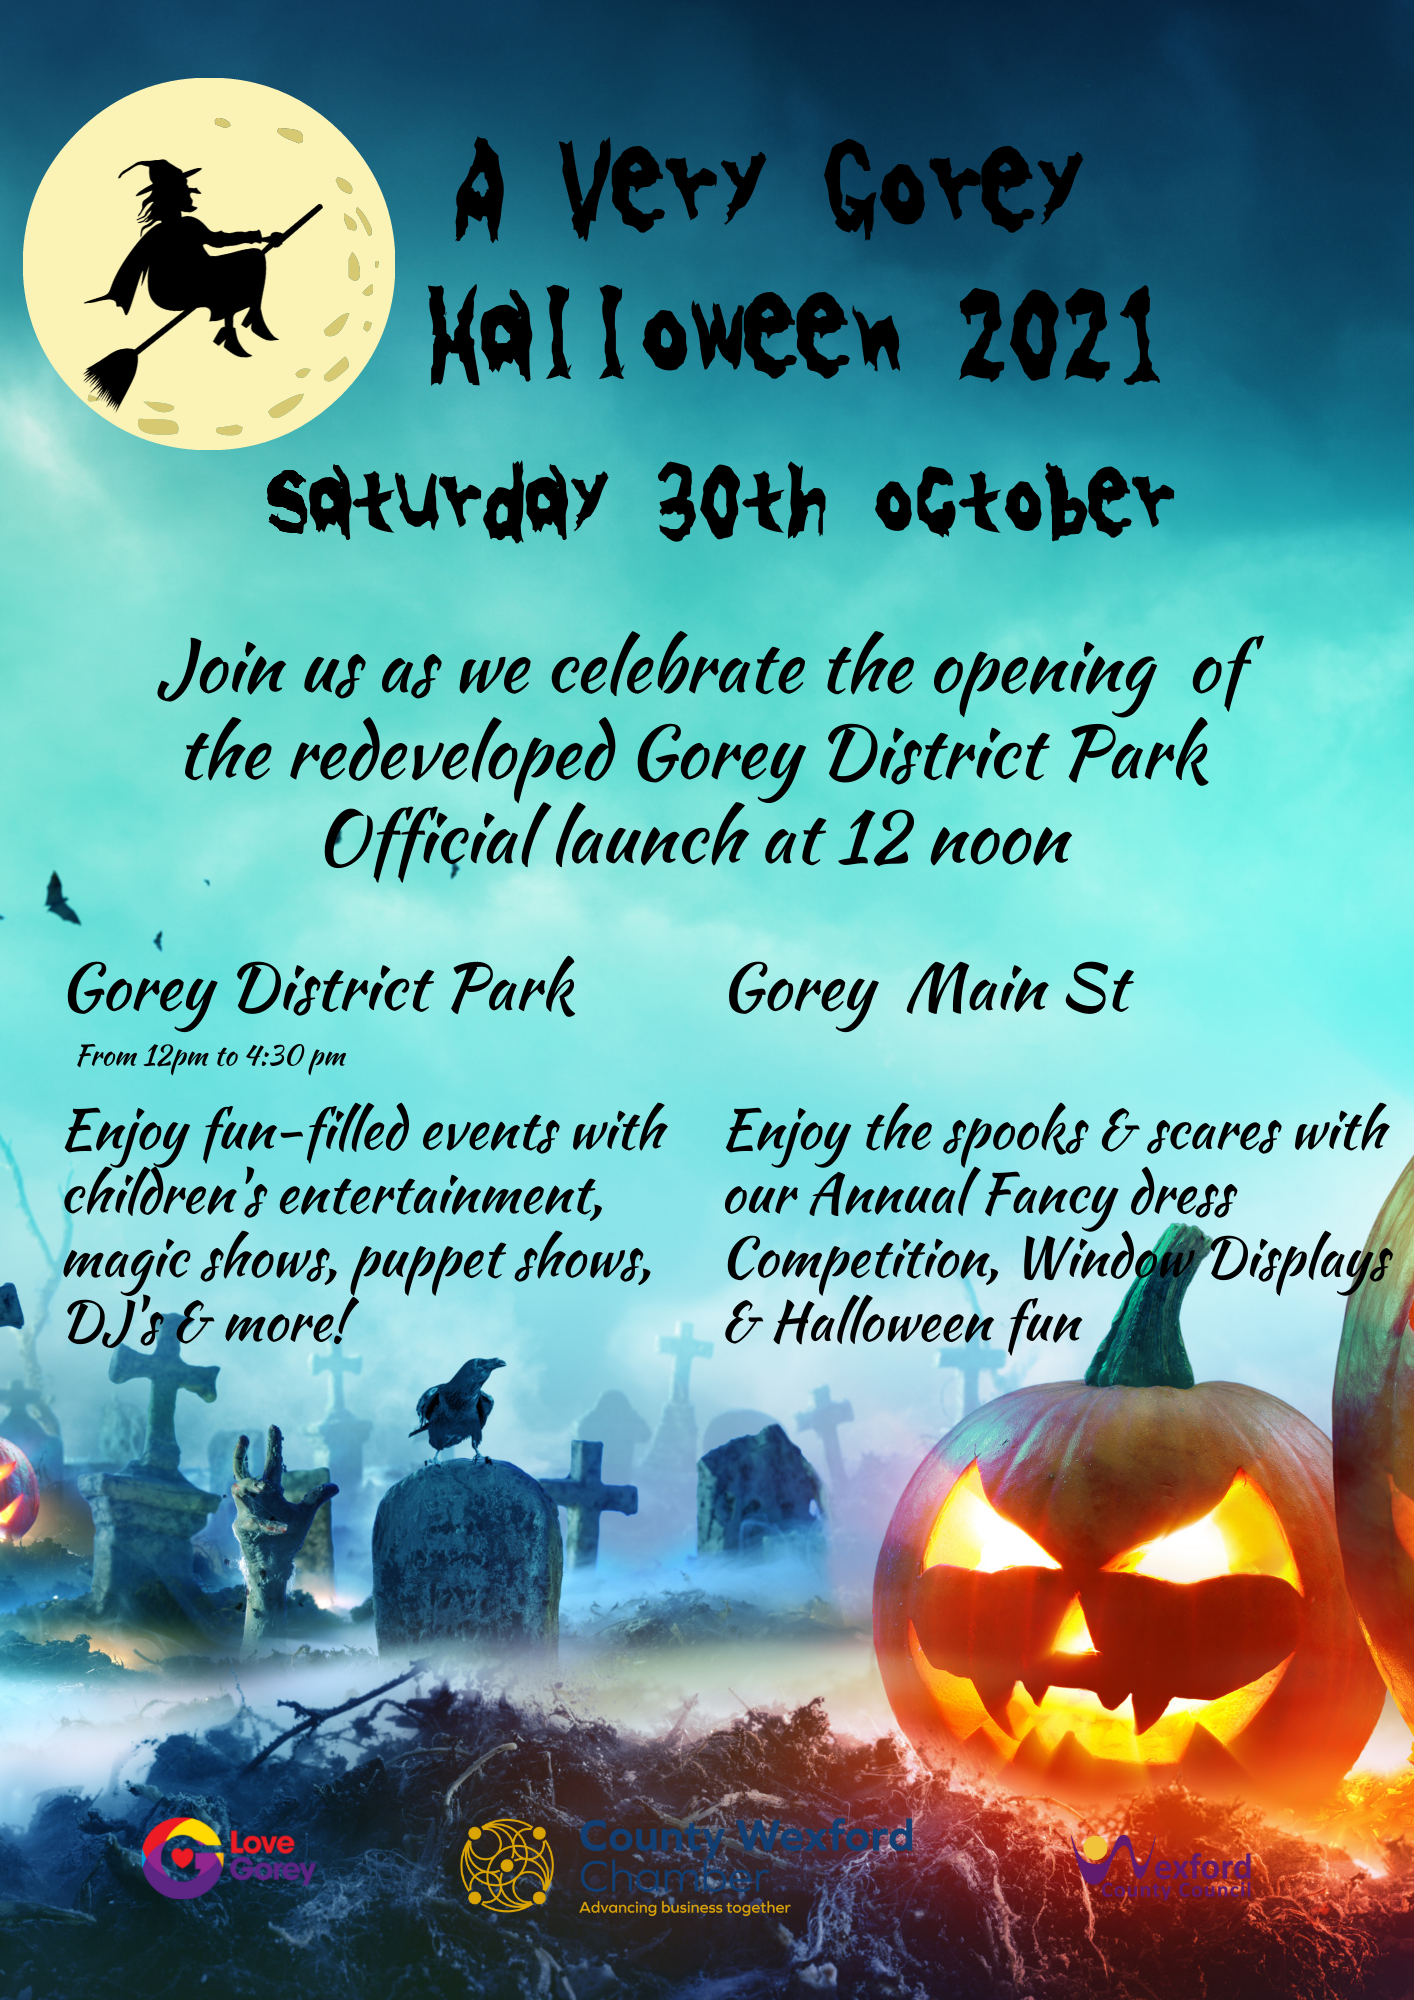 Gorey Halloween and District park launch 30th October